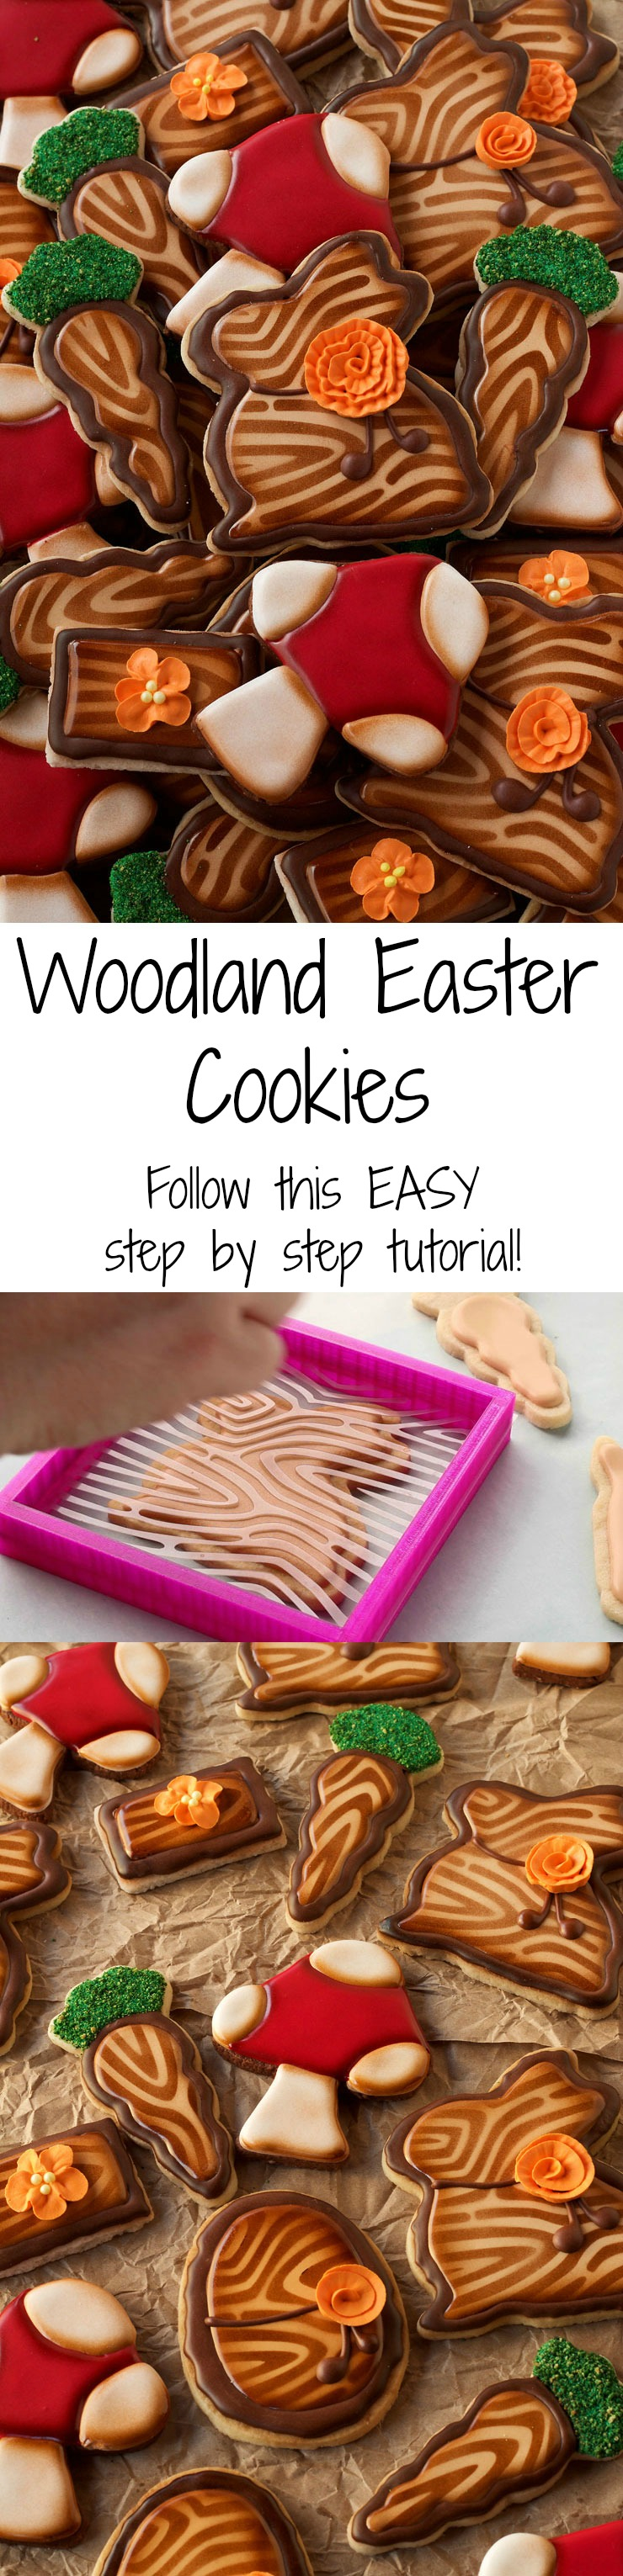 Easy Woodland Easter Cookies - Easy Step by Step Tutorial on How to Make these Sugar Cookies Decorated with Royal Icing www.thebearfootbaker.com